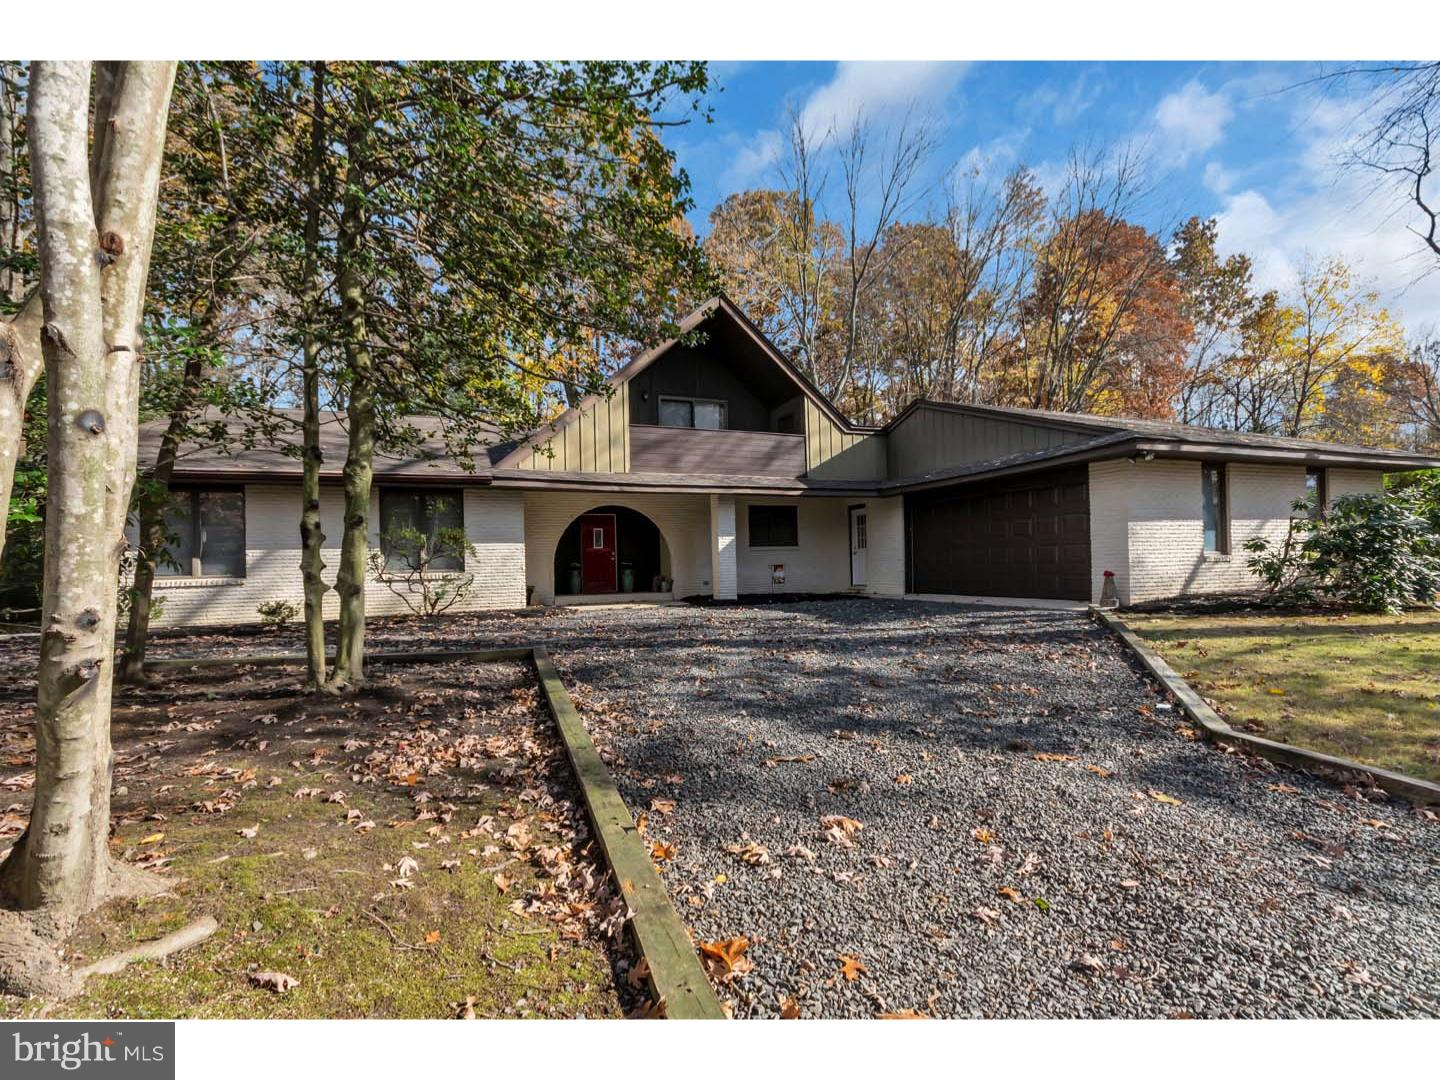 Single Family Home for Sale at 29 TALL OAKS Drive Laurel Springs, New Jersey 08021 United States